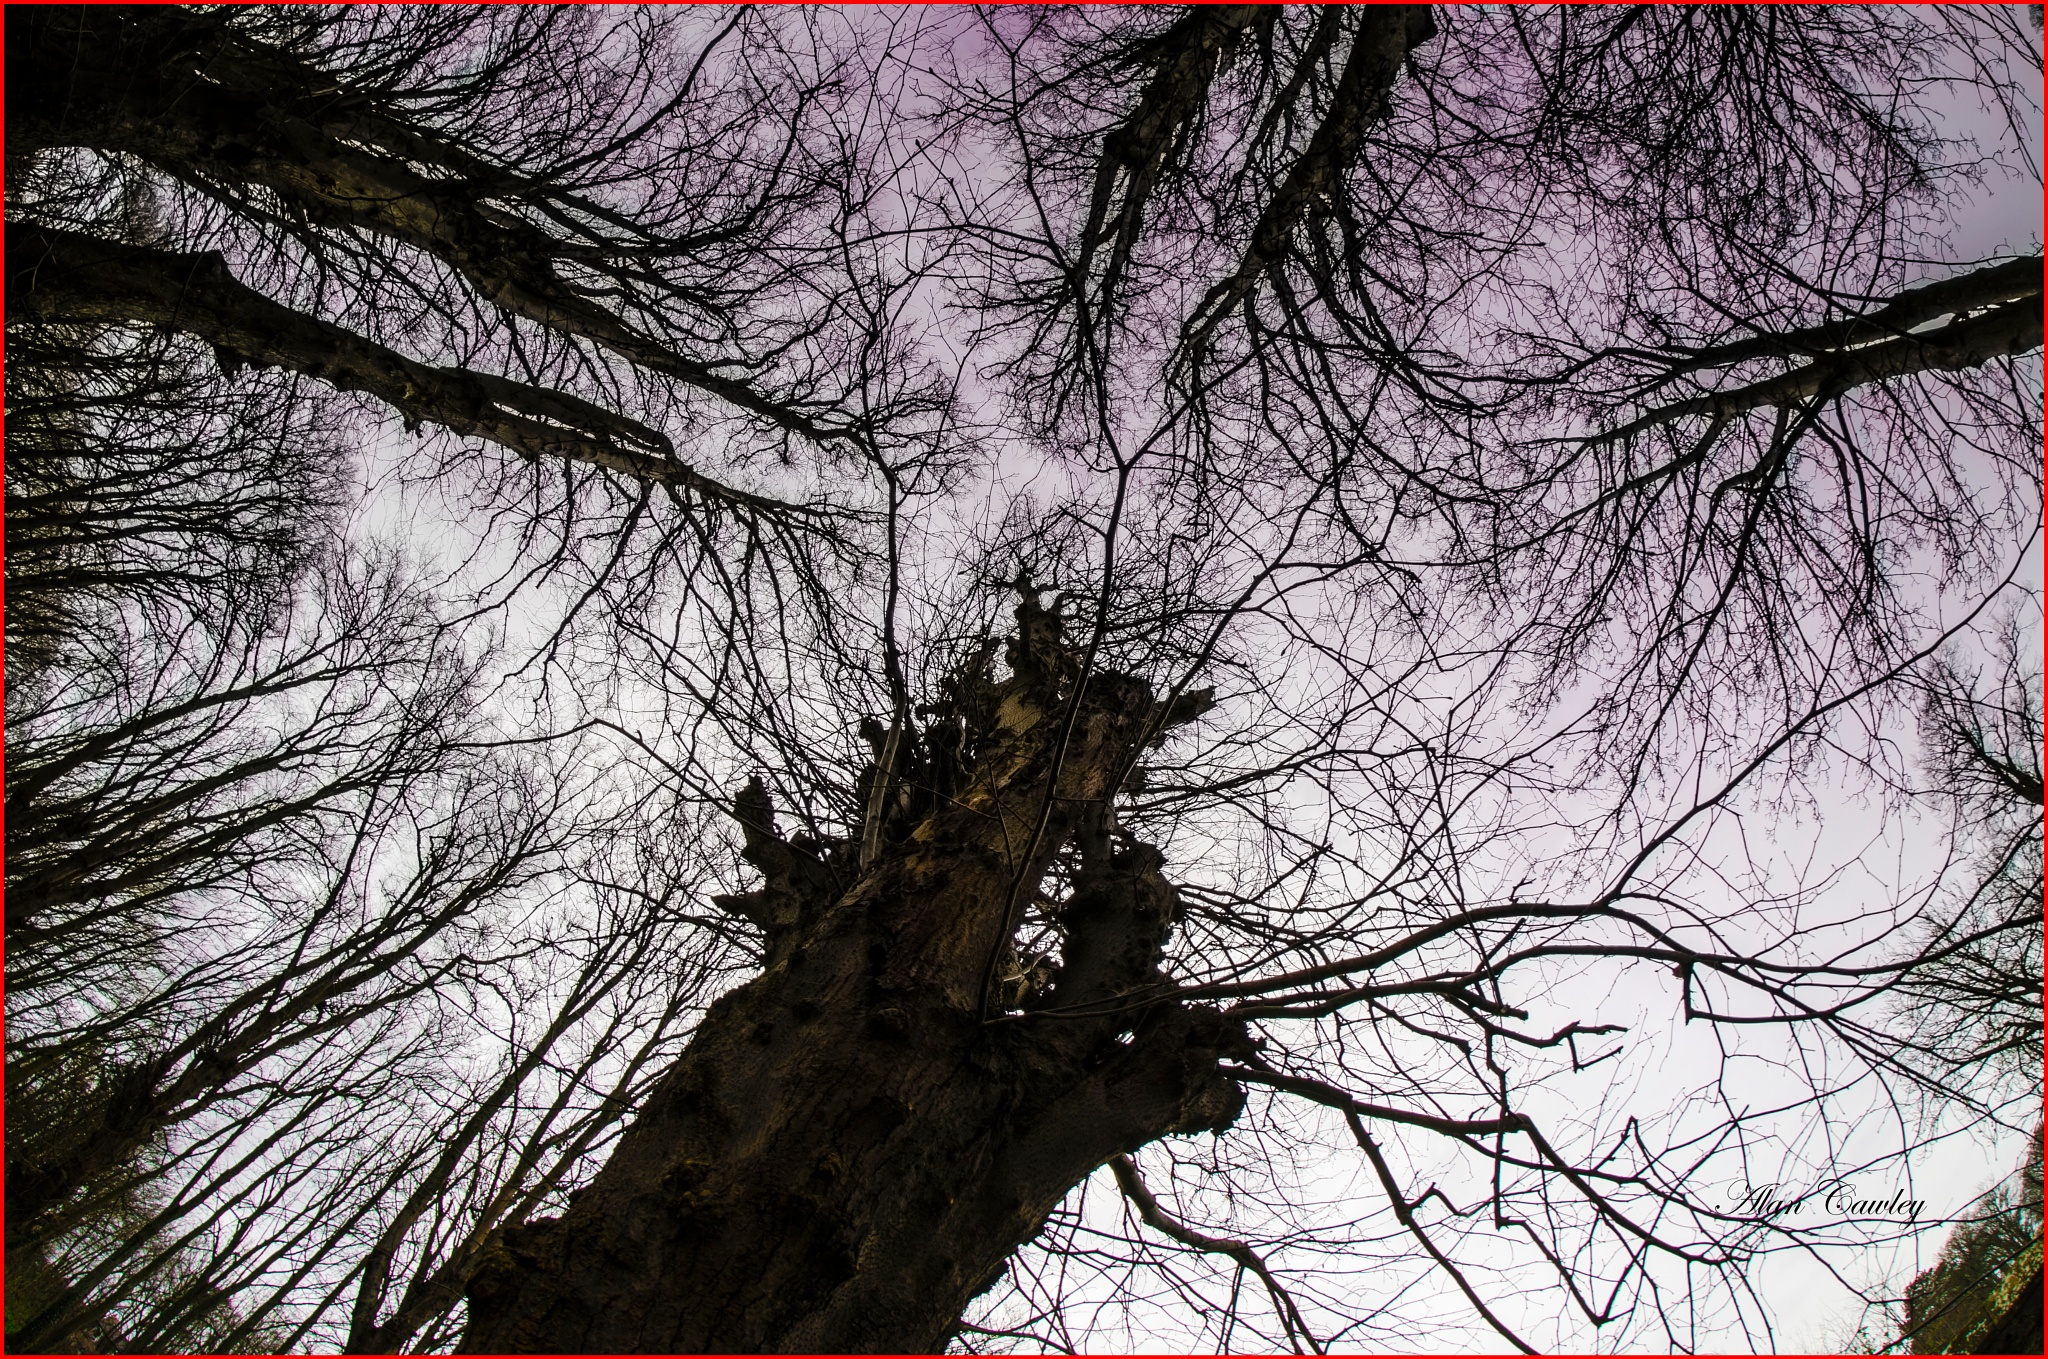 tree tops by acawley1